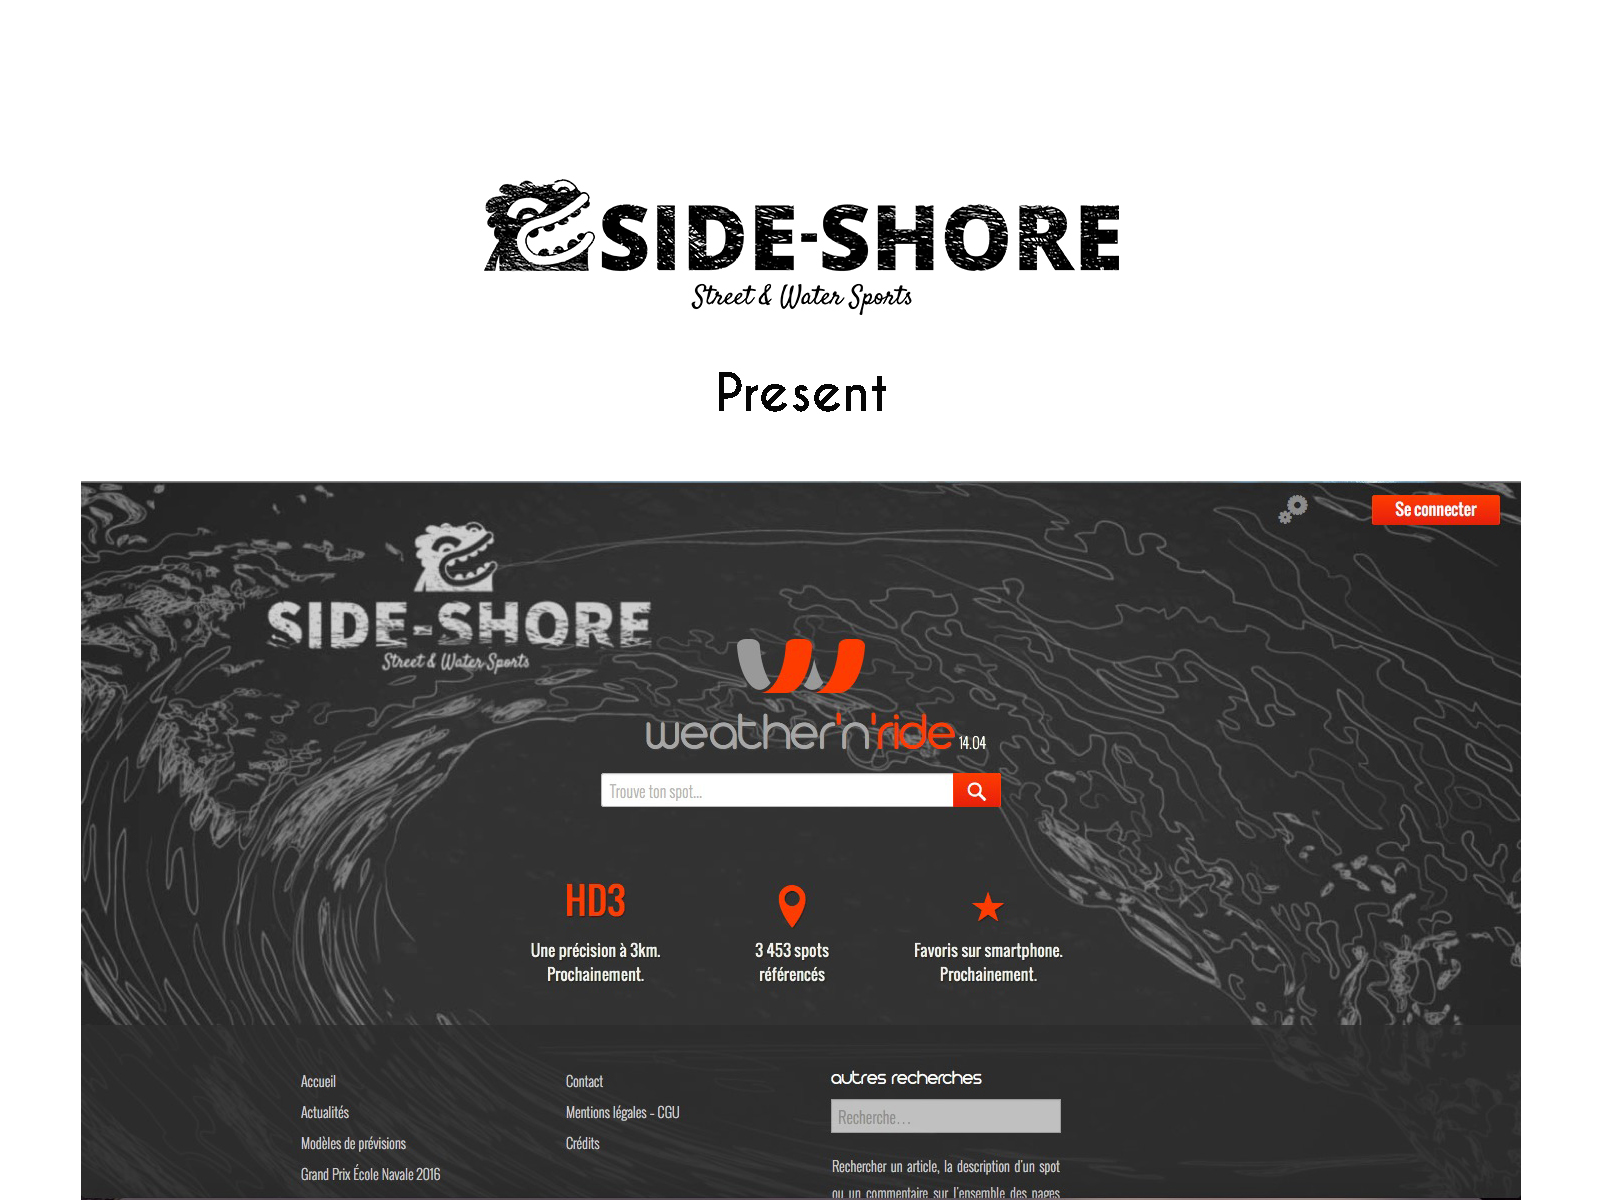 side-shore-meeto-present